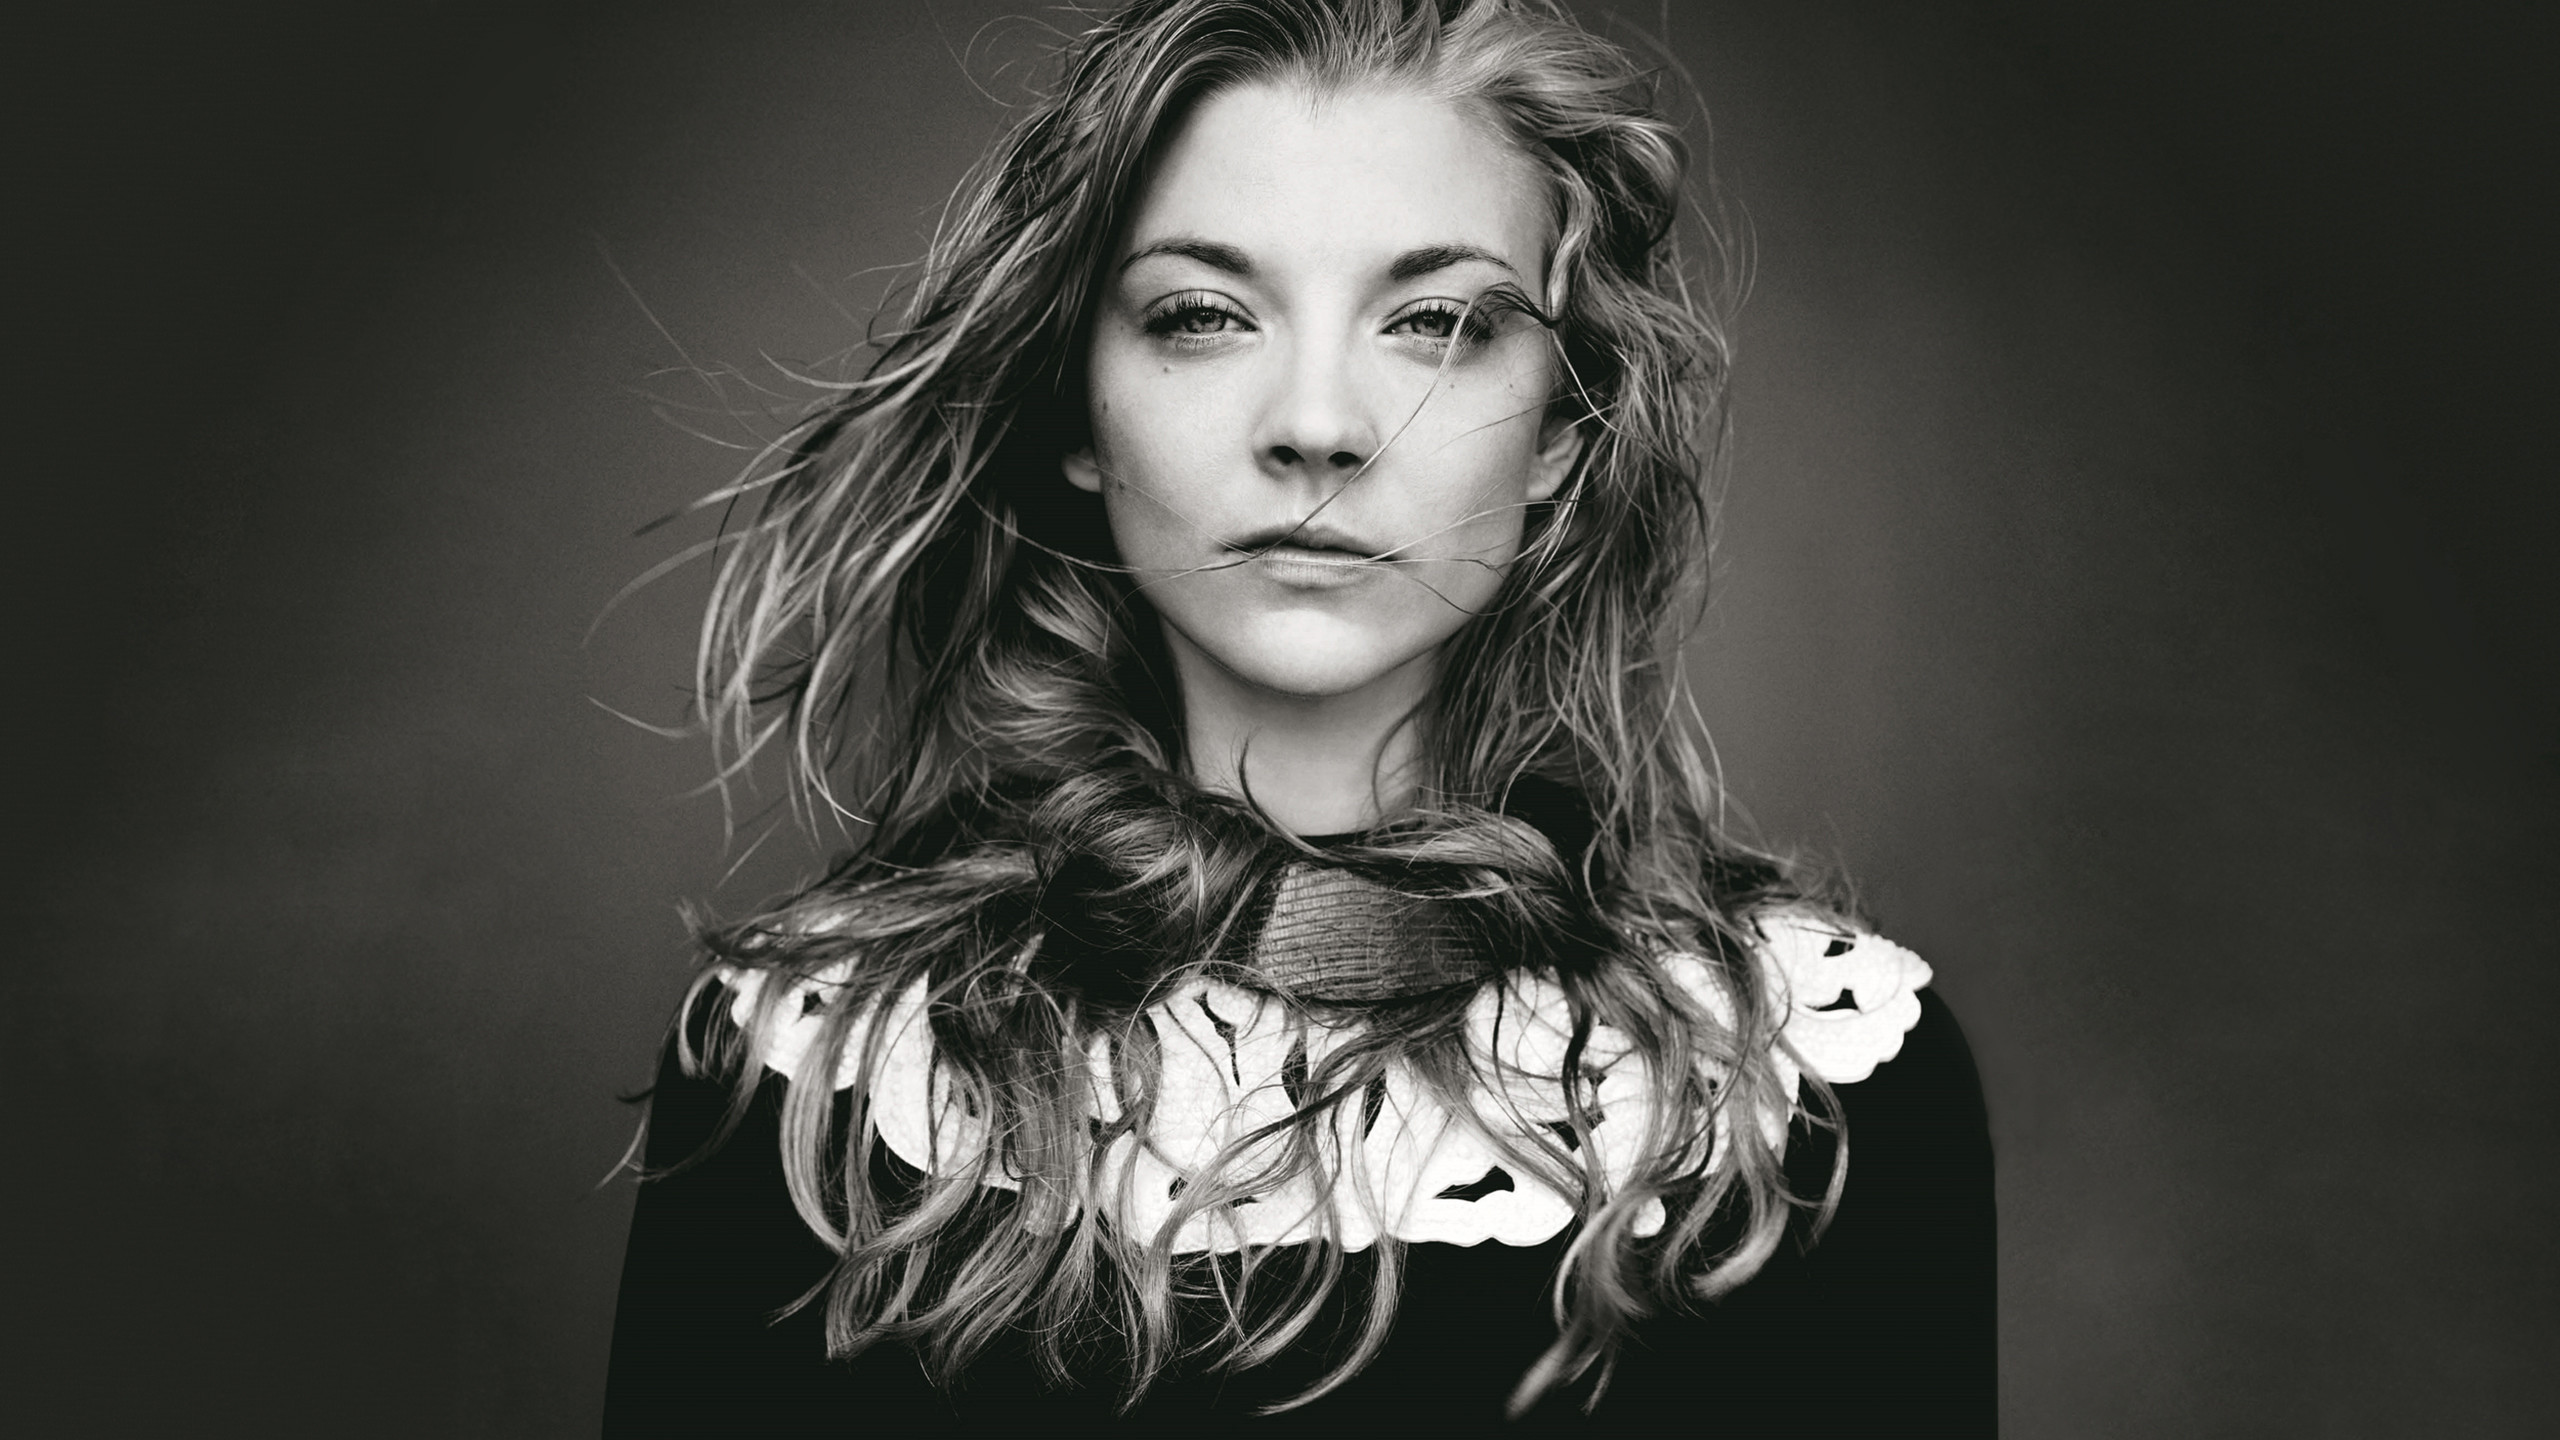 Natalie Dormer Margaery Tyrell From Game Of Thrones